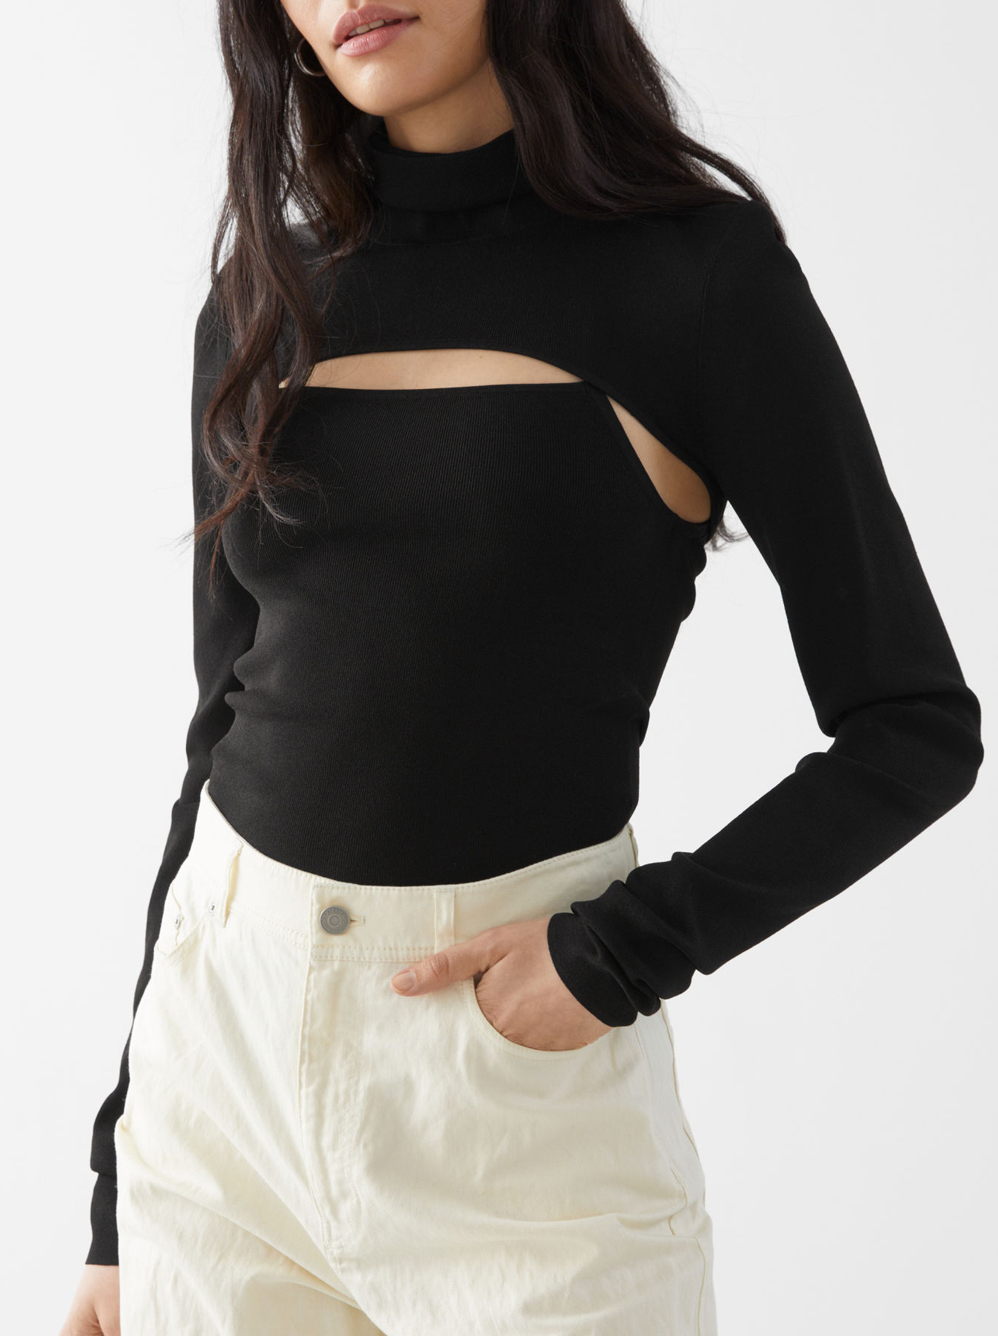 othersotries cut out top